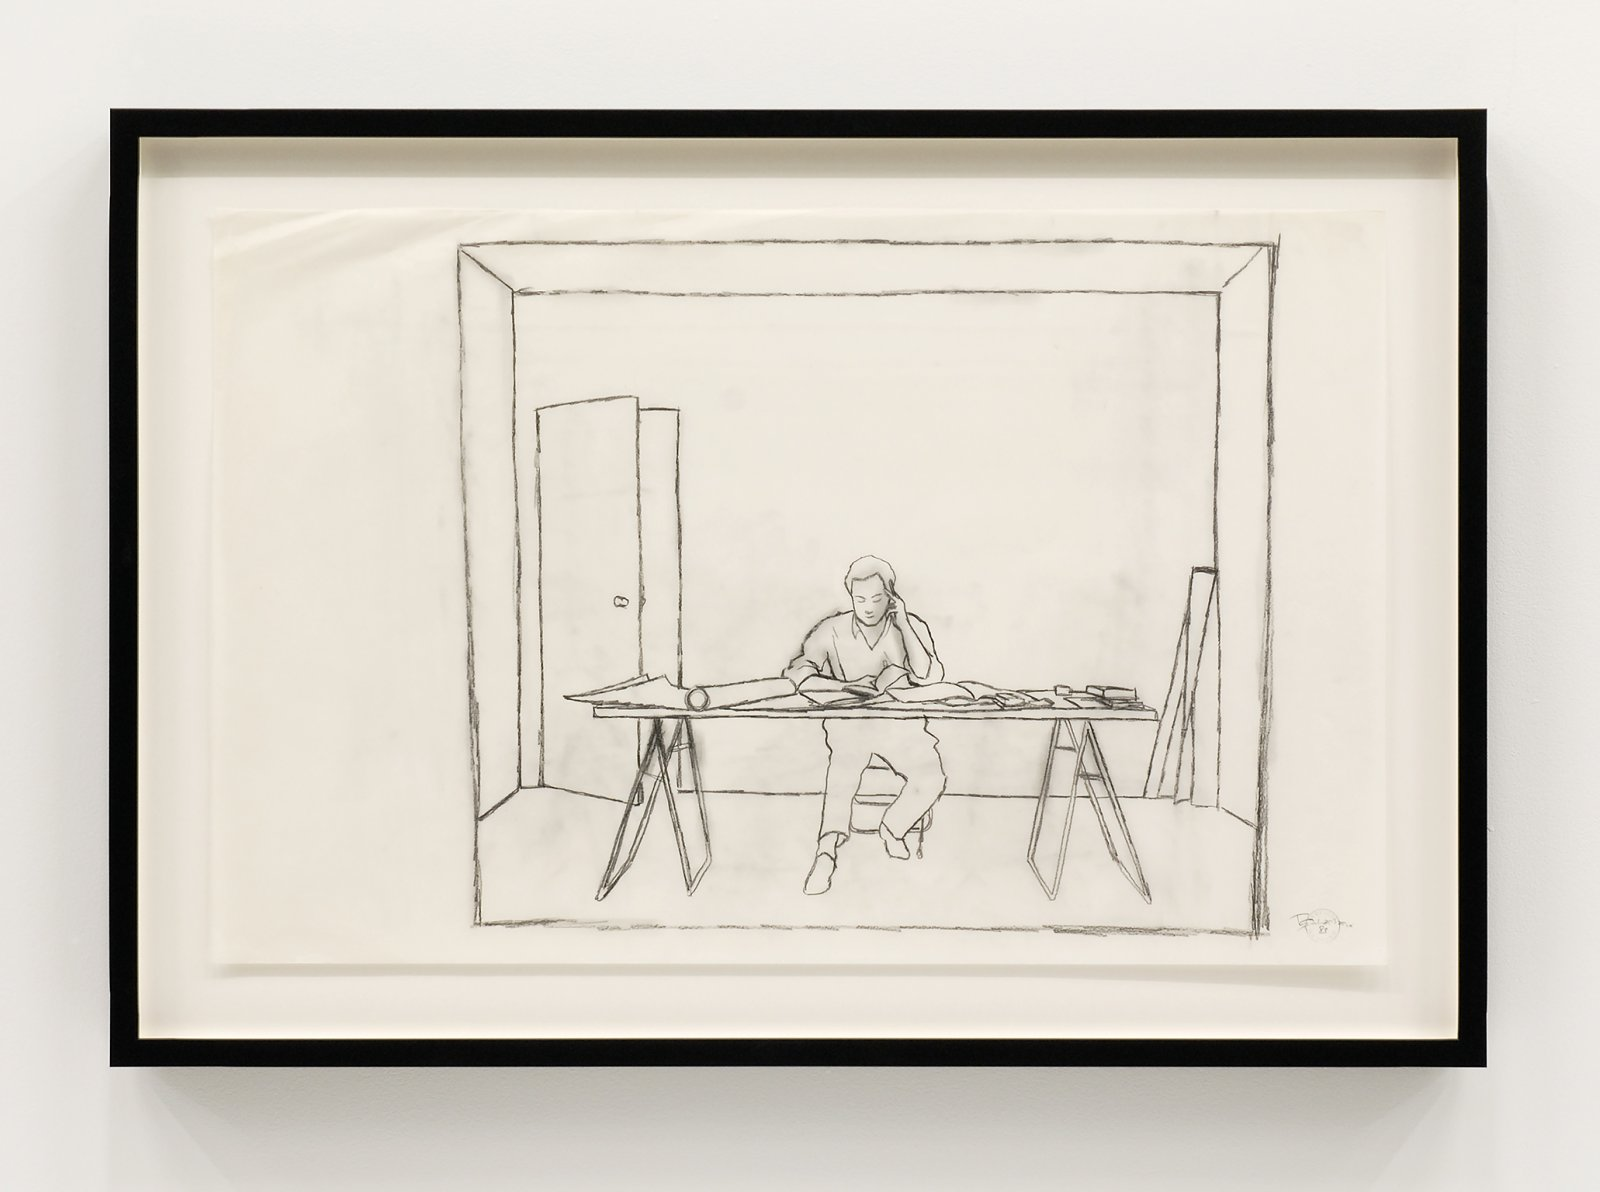 Ian Wallace, At Work 1983, 1983, pencil on mylar, 22 x 34 in. (56 x 86 cm) by Ian Wallace